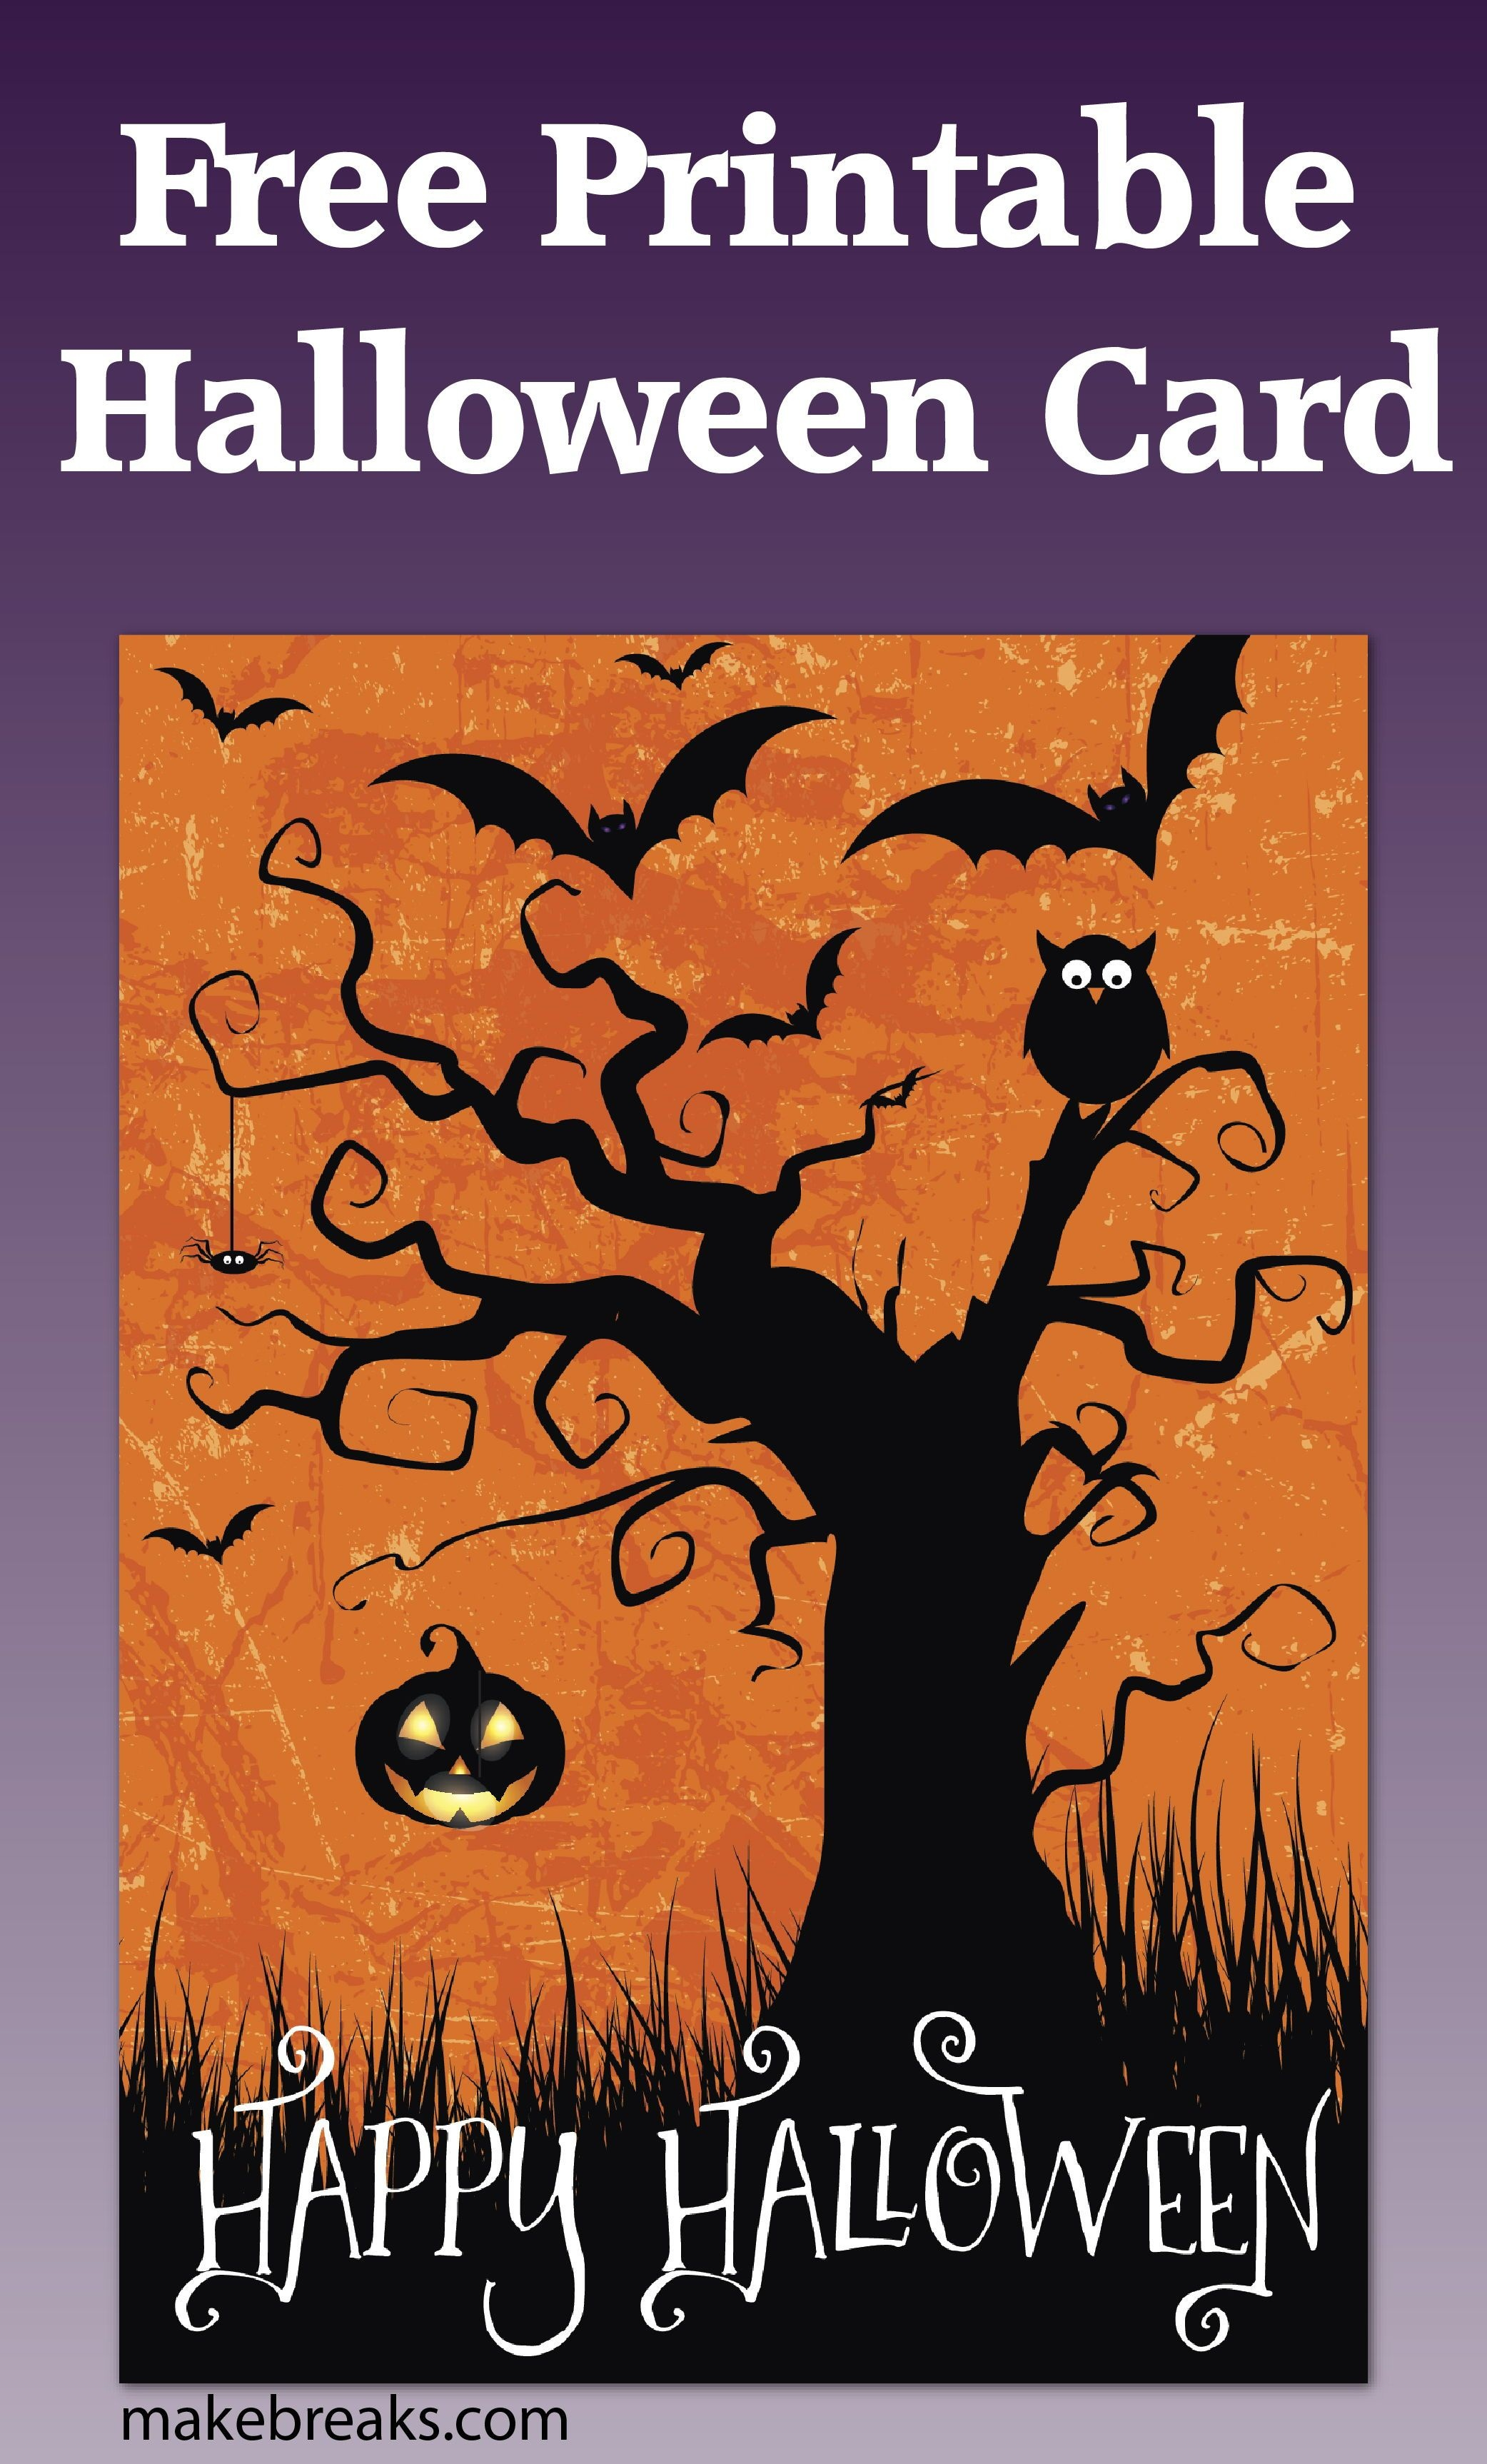 Free Printable Happy Halloween Card Or Party Invitation   Diy And - Free Printable Halloween Cards